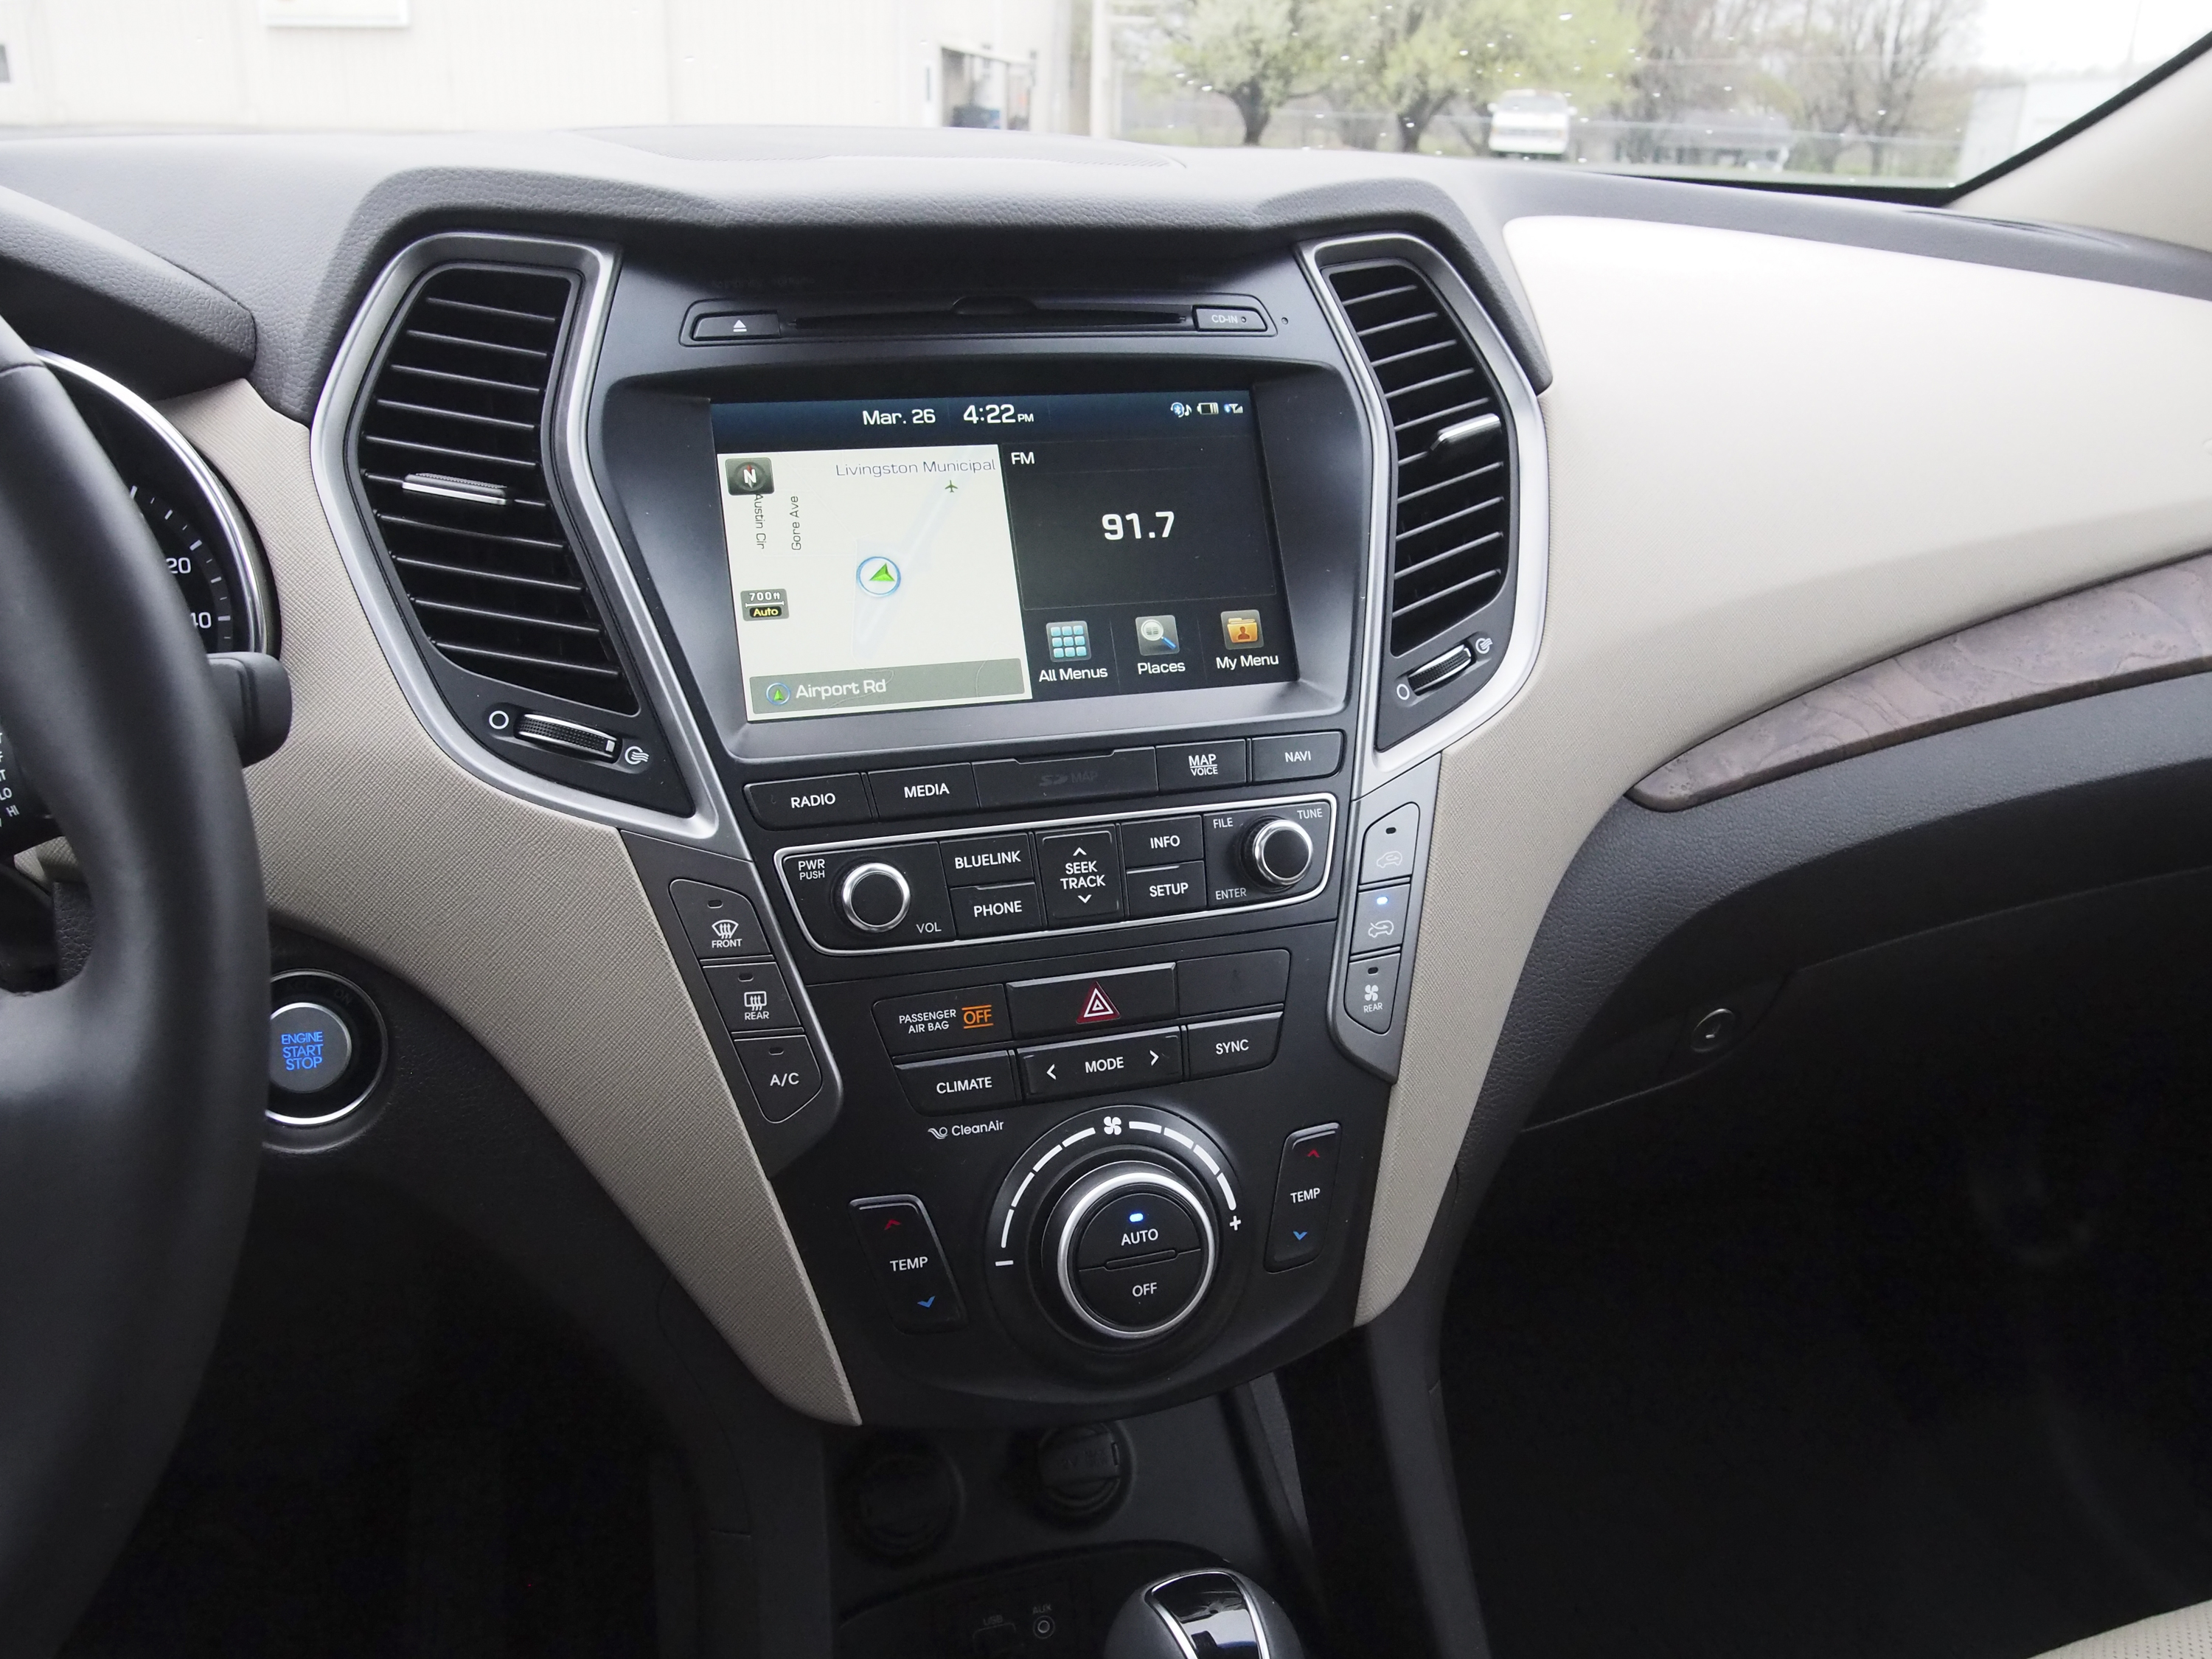 dealers cars mn hyundai com sales auto for img at austin south sale used in tucson west